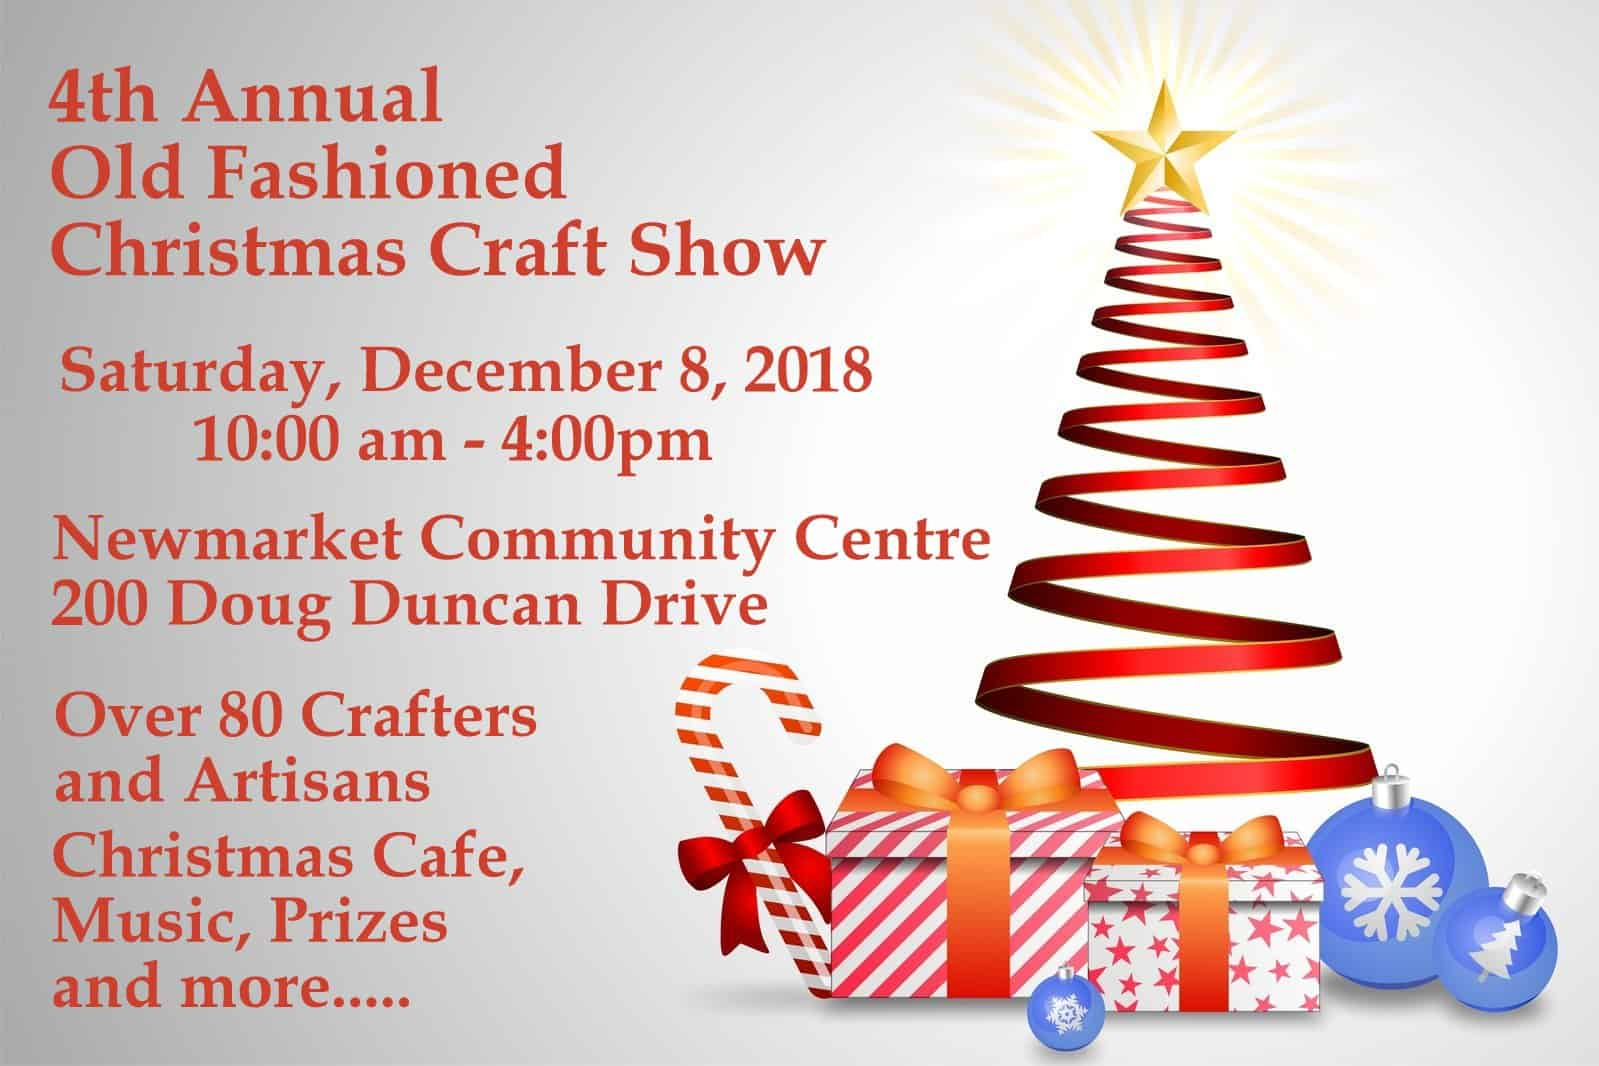 4th Annual Old Fashioned Christmas Craft Show - Attractions Ontario